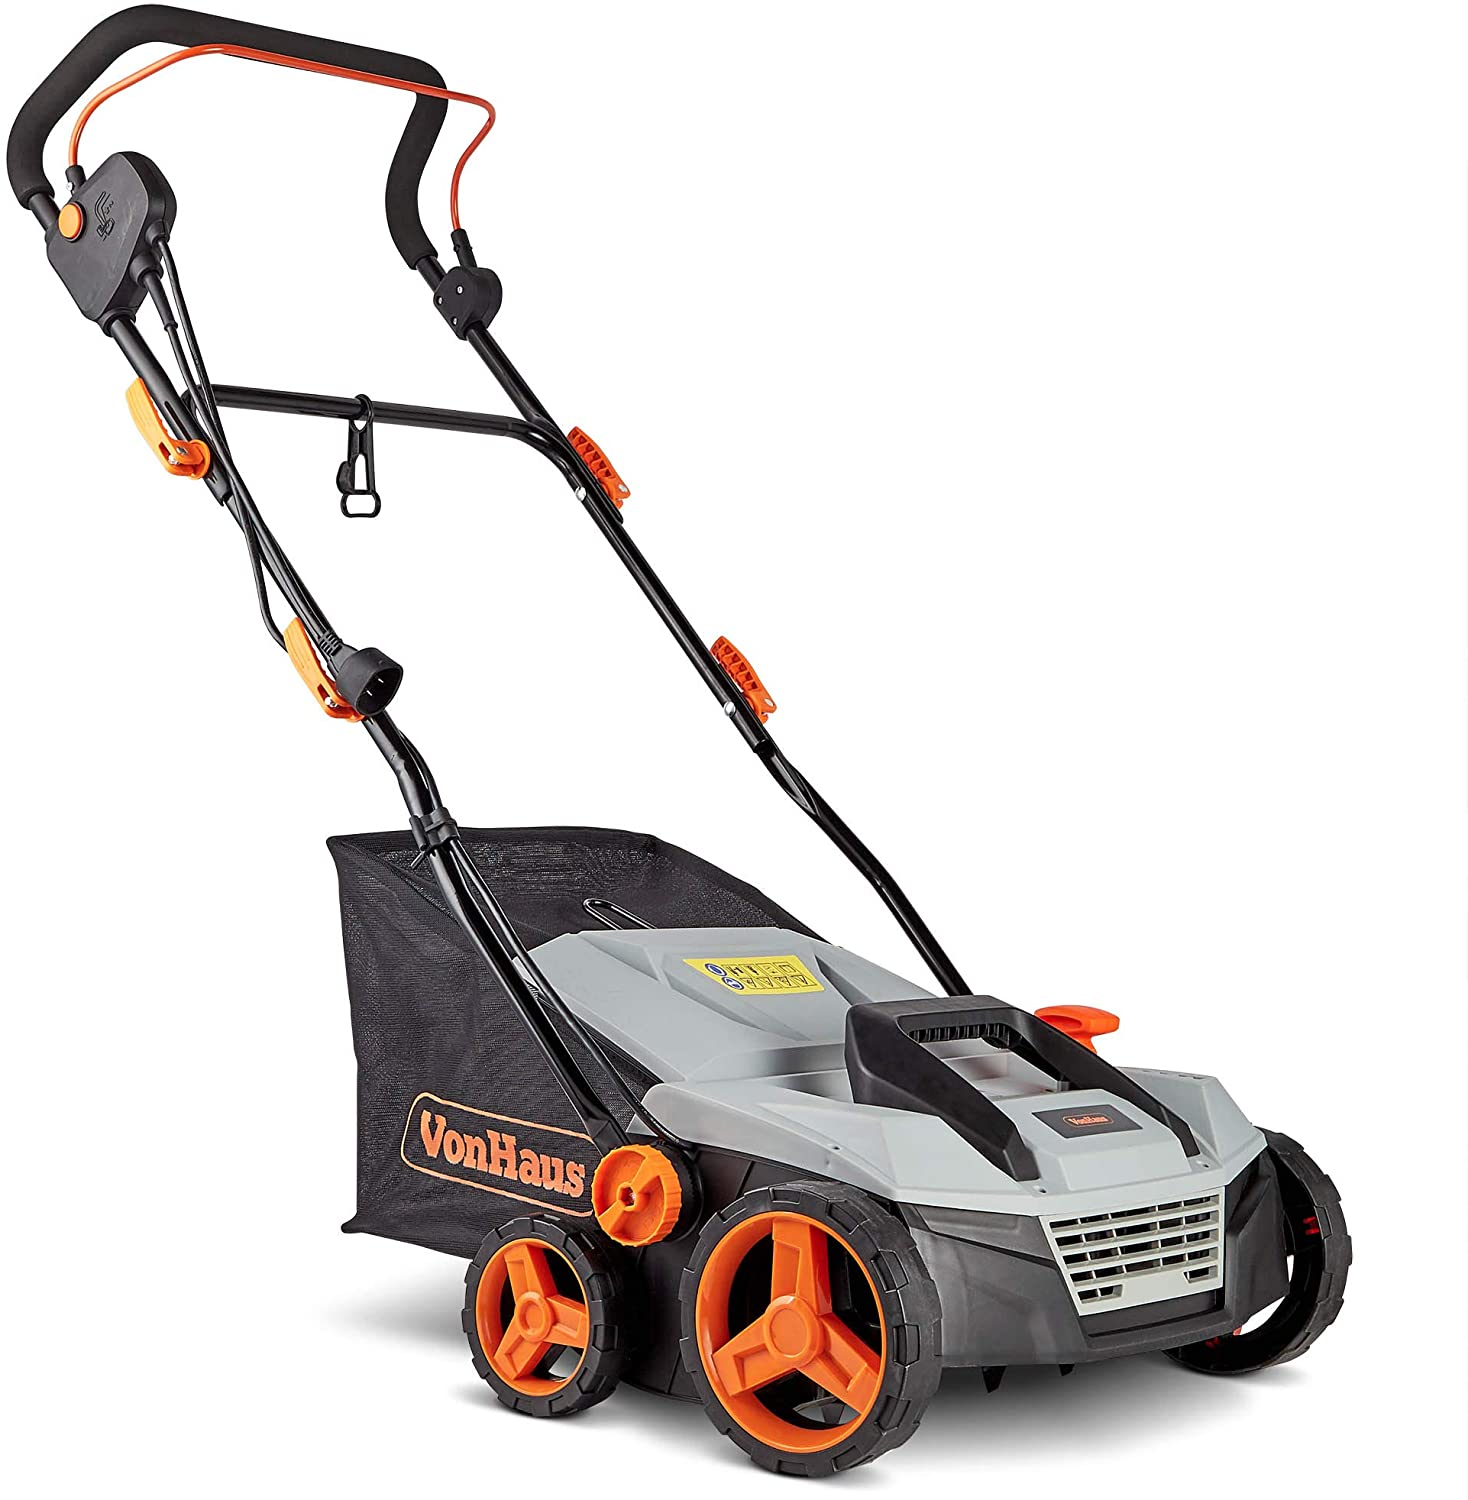 VonHaus Corded Electric 2-in-1 Lawn Dethatcher and Aerator